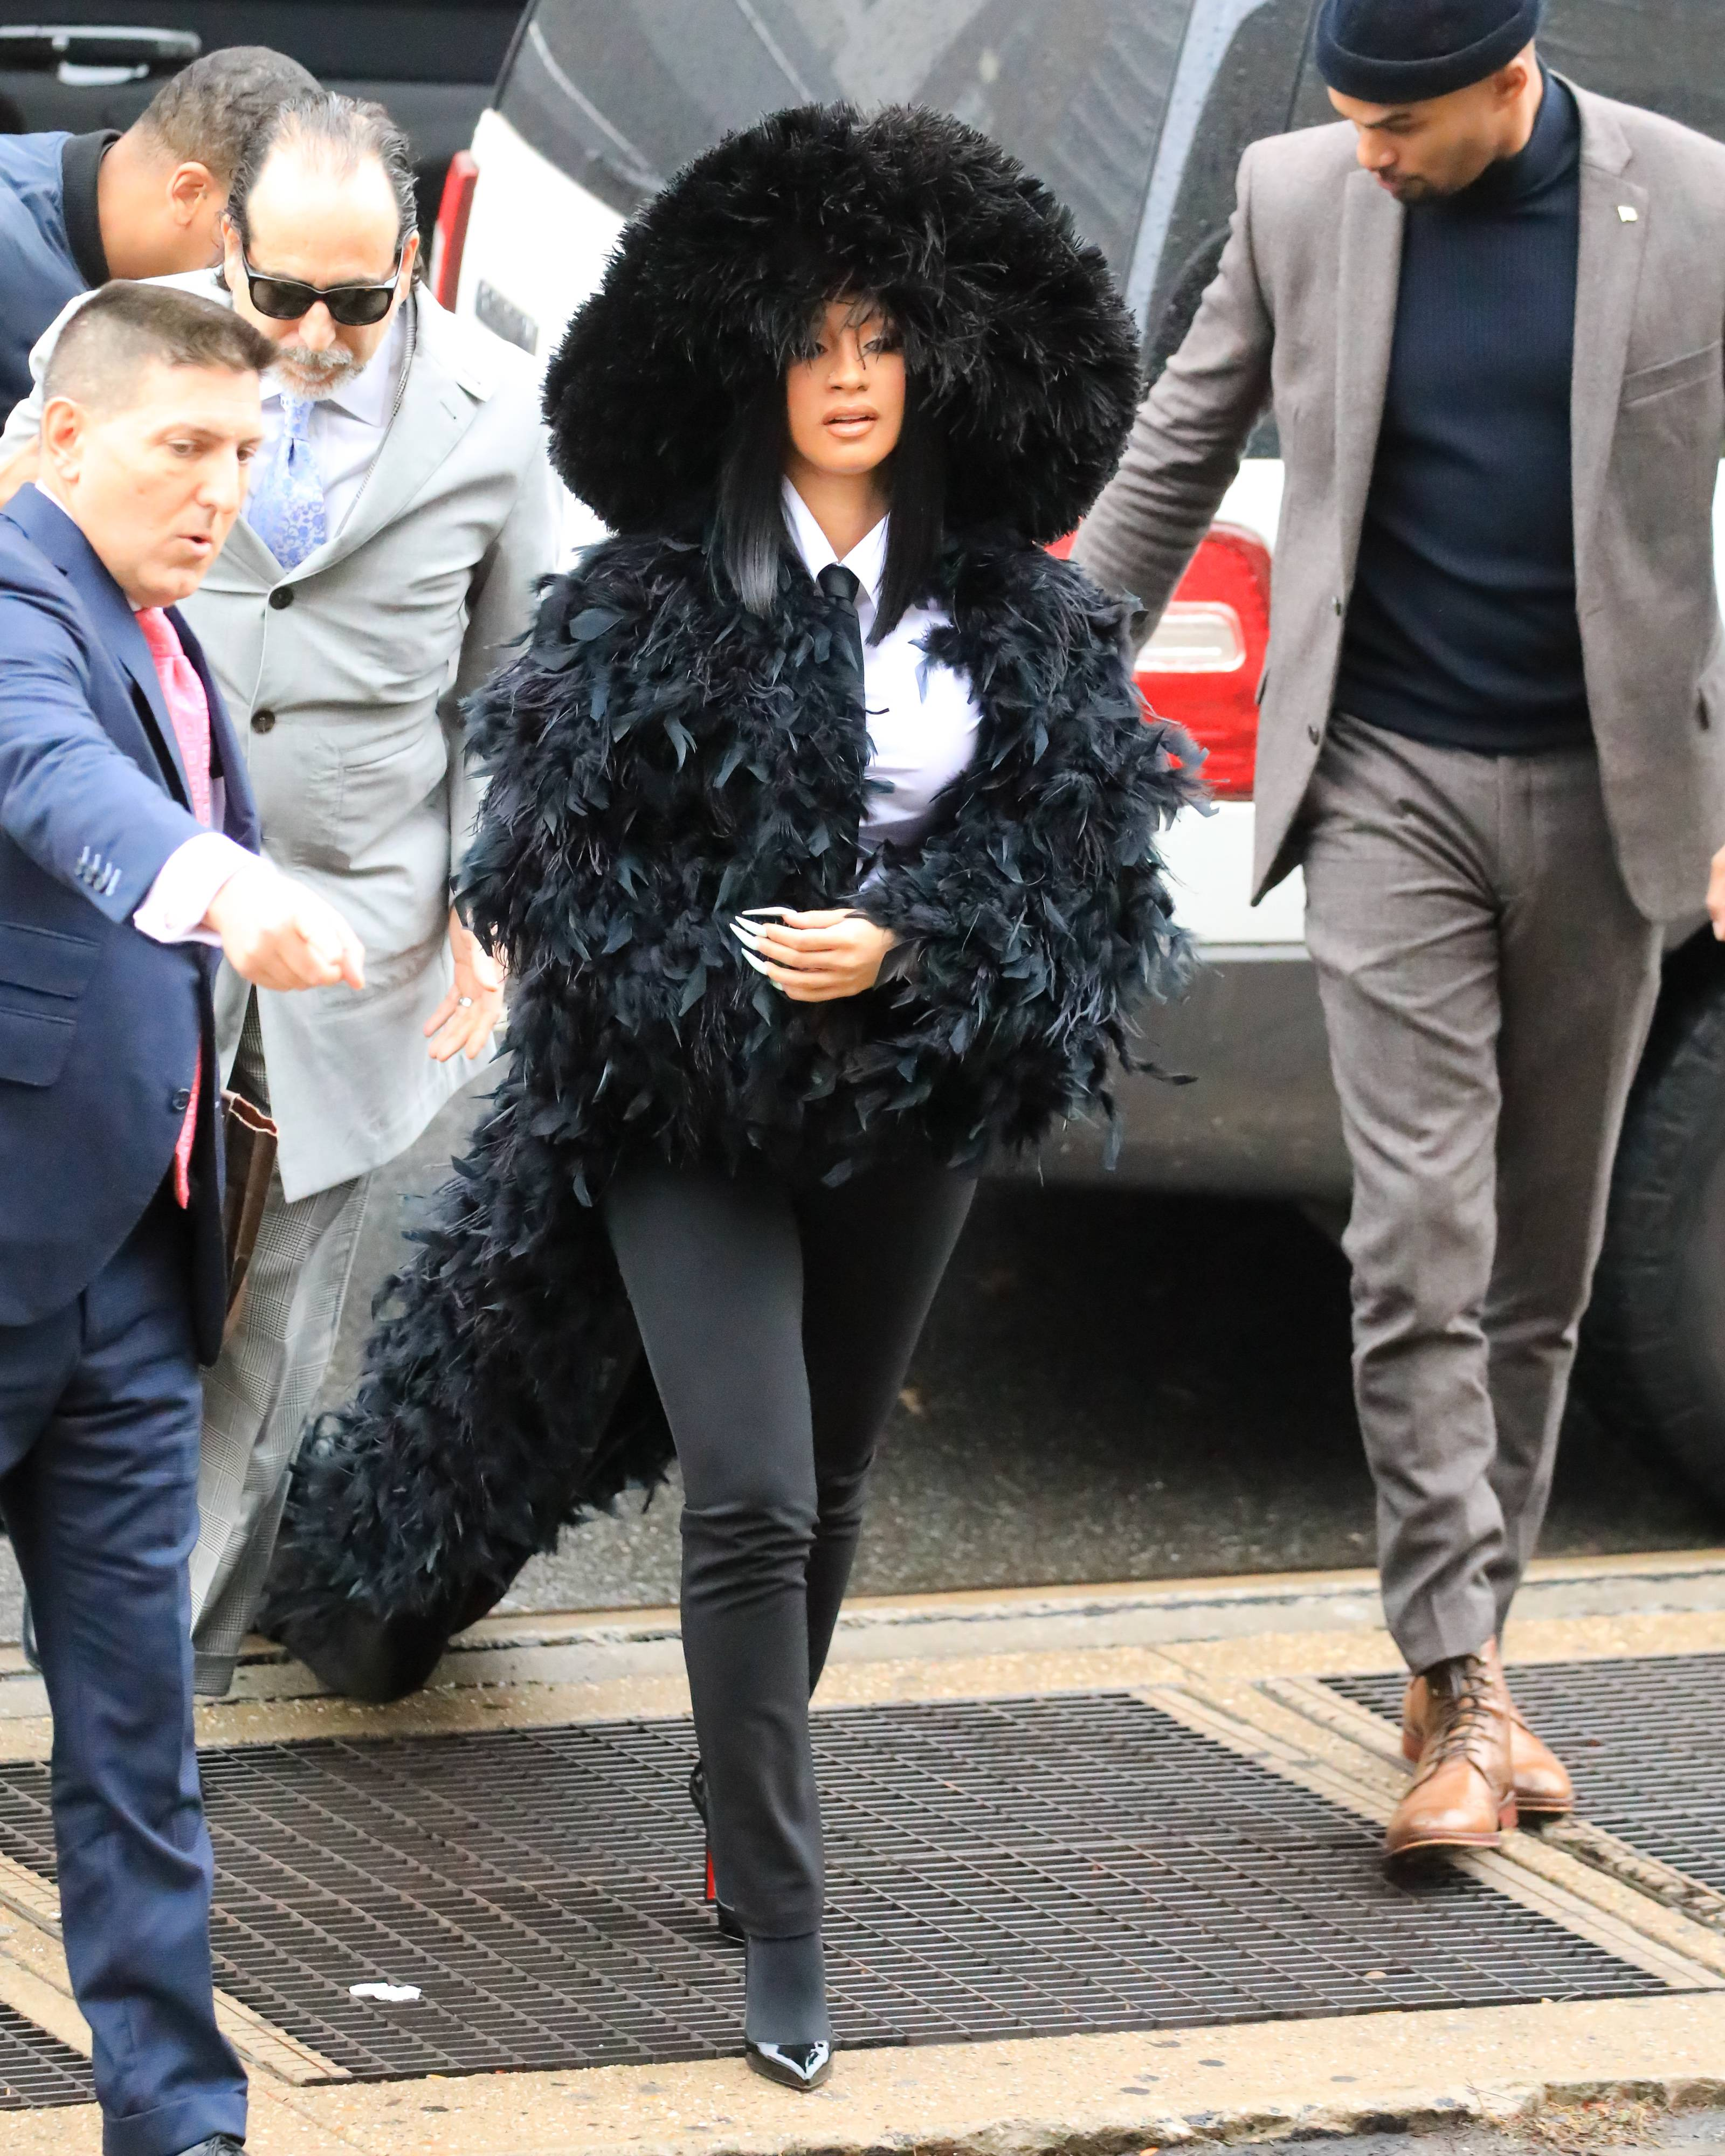 A Queen In Queens - Styled by Kollin Carter, Cardi arrived at court in Queens, NY on Tuesday (Dec. 10) dressed to the nines in ADRIENNE LANDAU's Queen's fur coat designed by Saulo Villela. Talk about making a grand entrance! (Photo: Alessio Botticelli/GC Images)